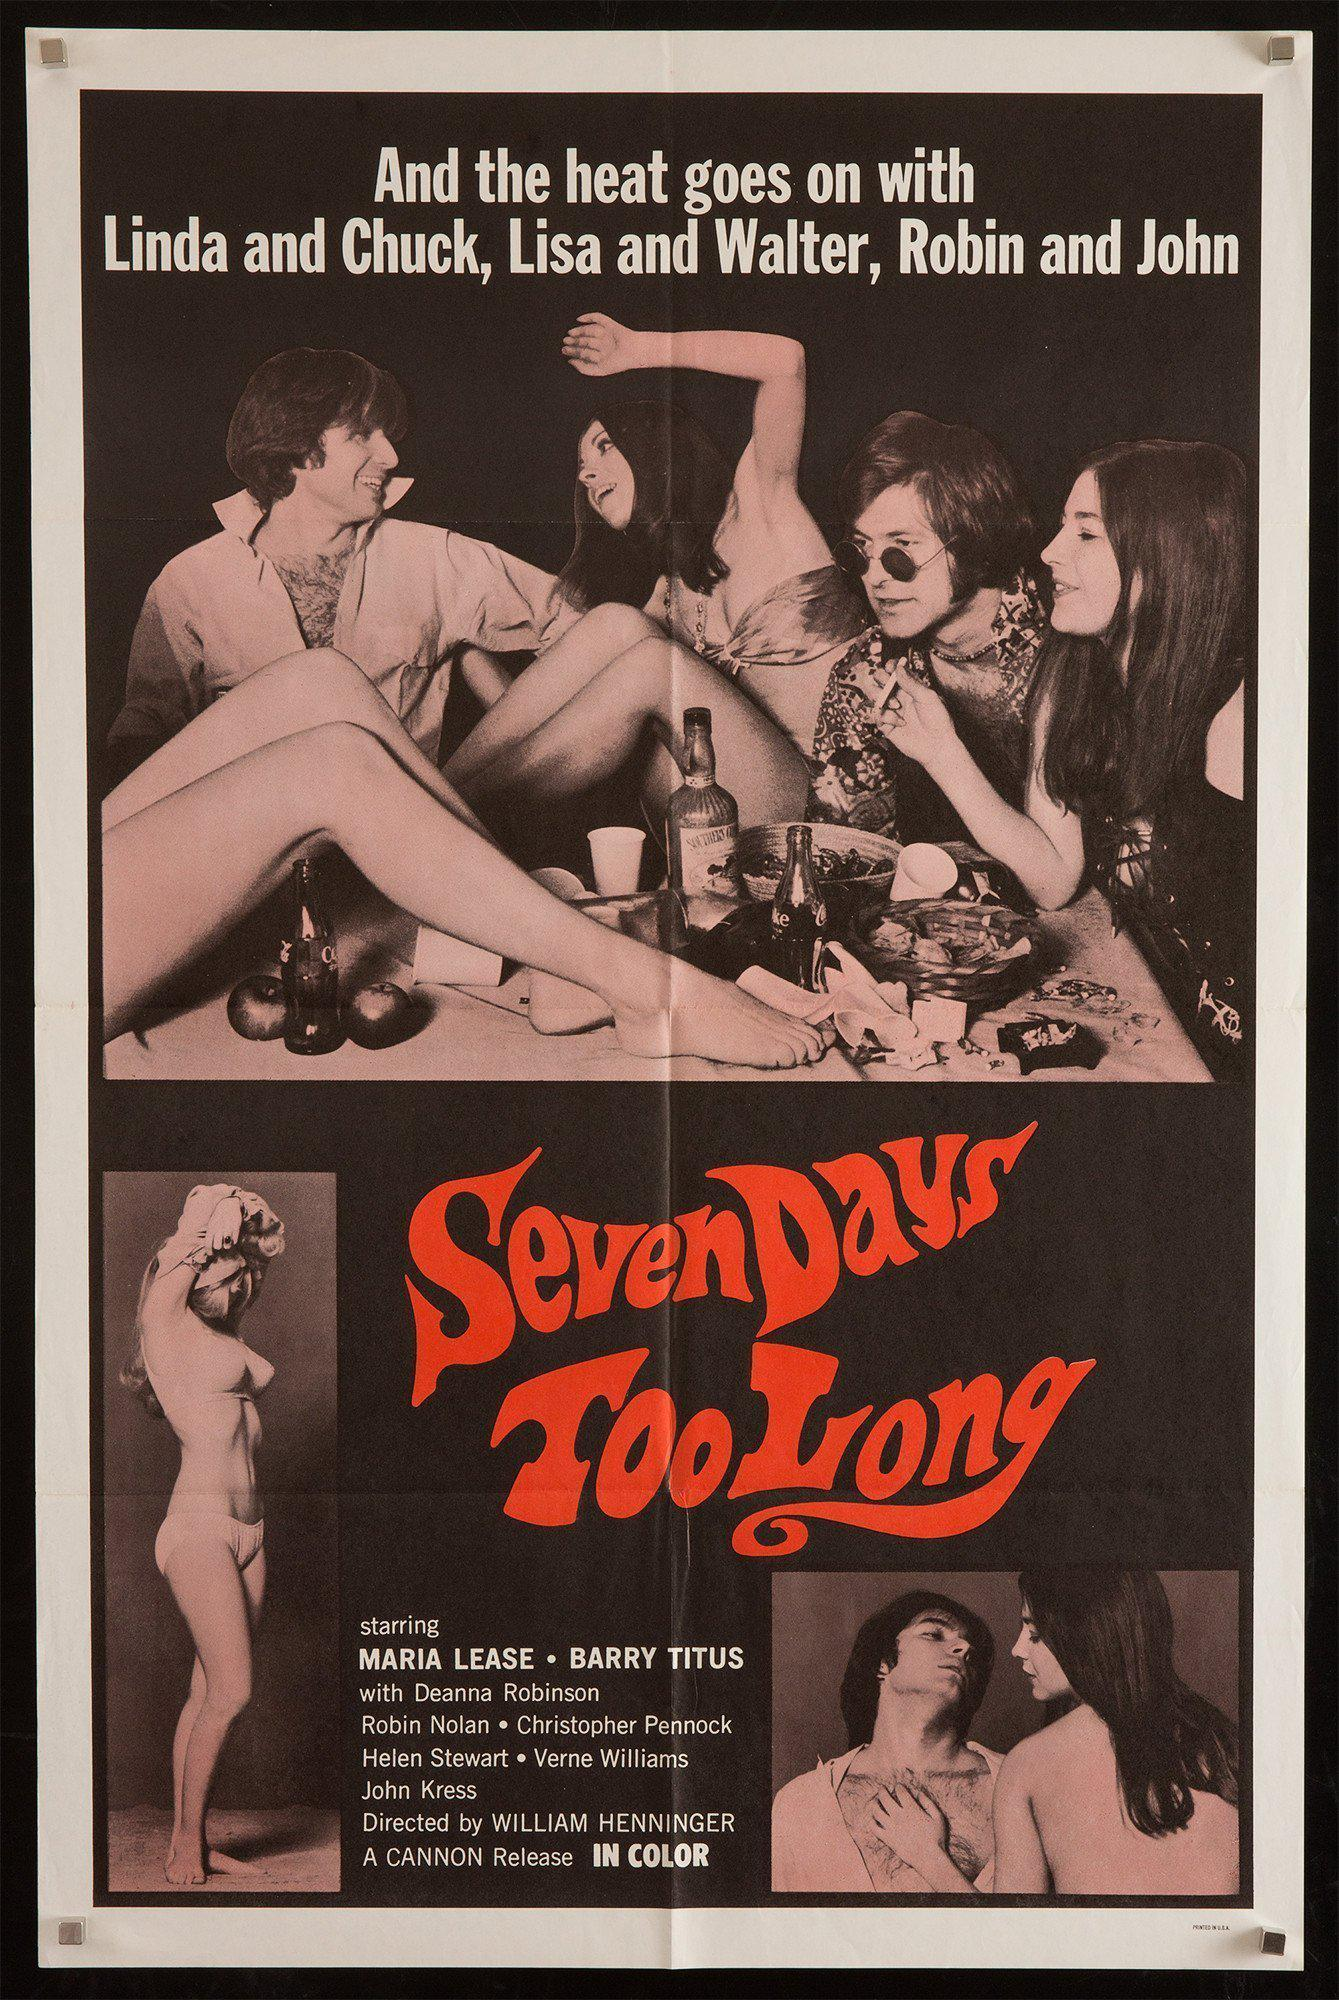 Seven Days Too Long 1 Sheet (27x41) Original Vintage Movie Poster